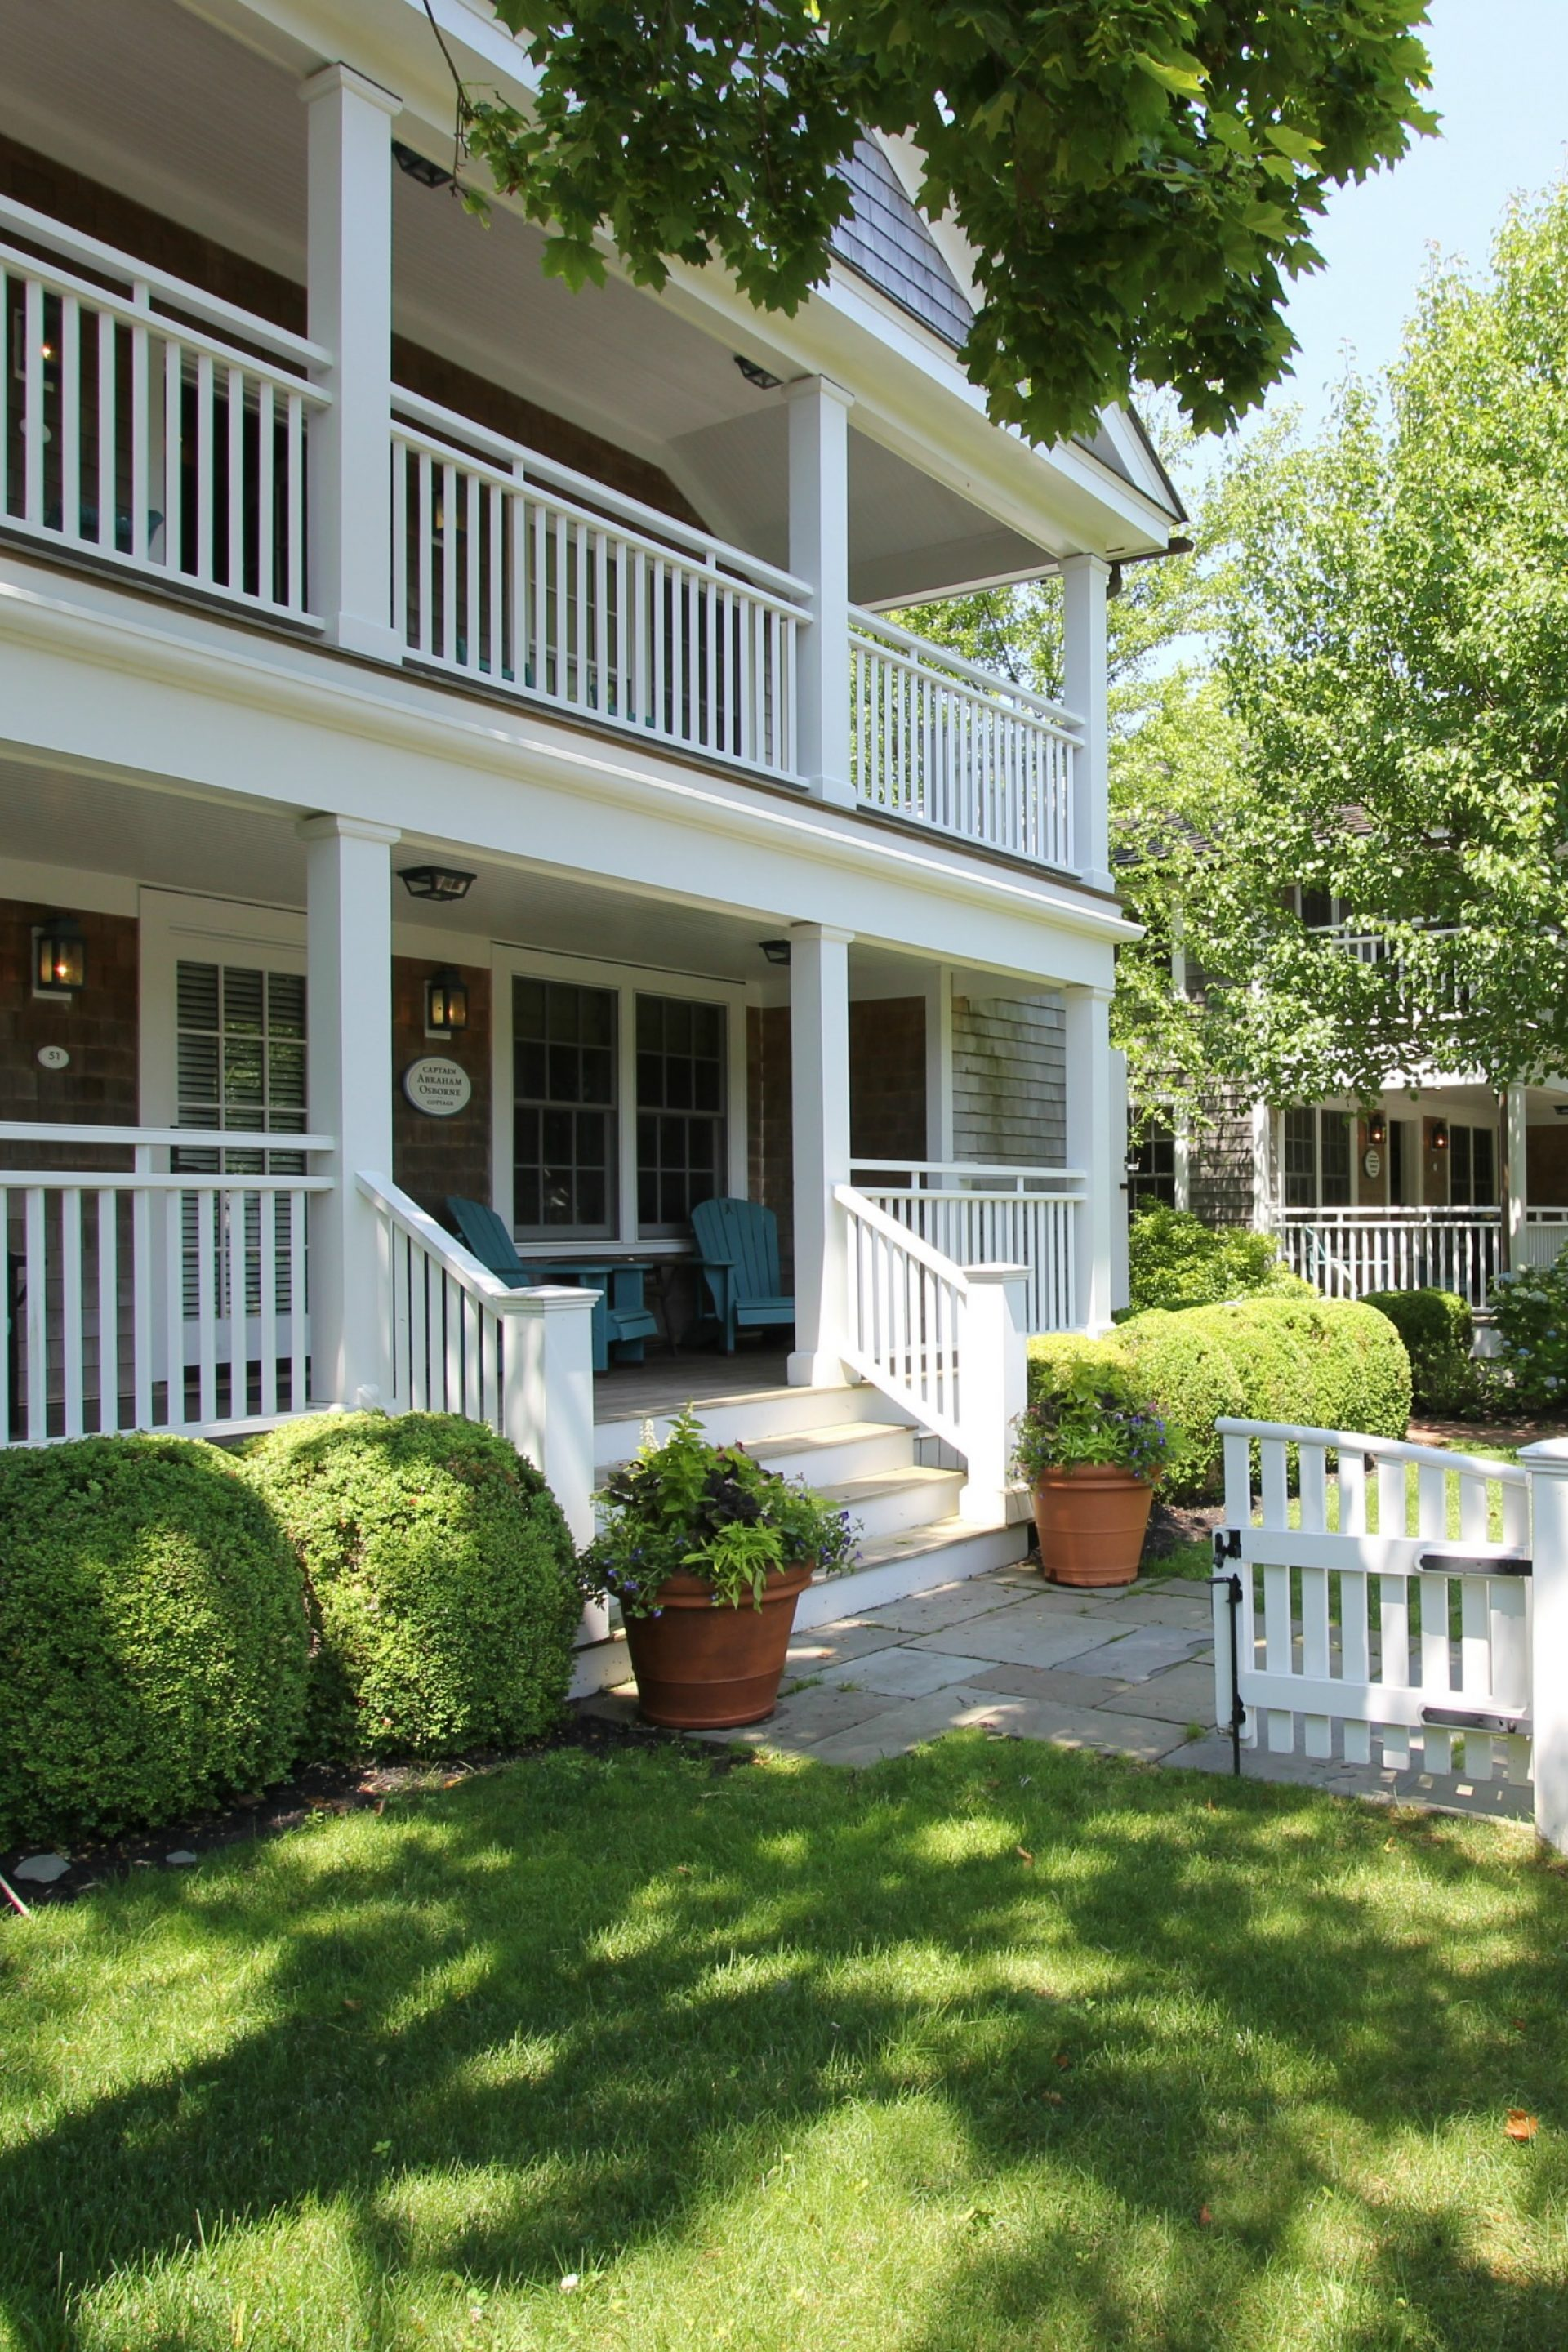 Condos for sale in Martha's Vineyard - Own the Captain's Cottages at Harbor View Hotel